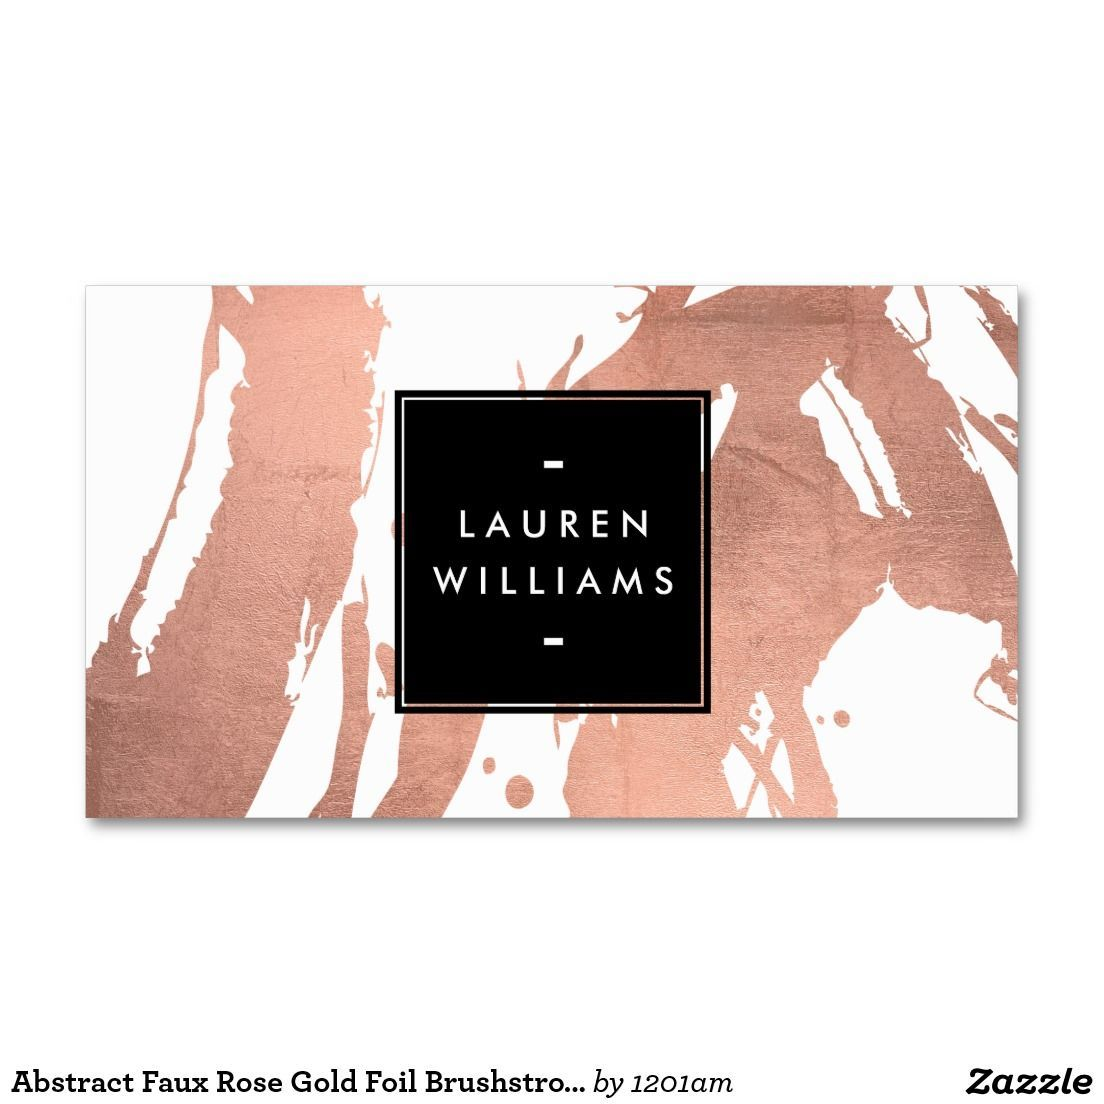 Abstract Faux Rose Gold Foil Brushstrokes on White Business Card ...